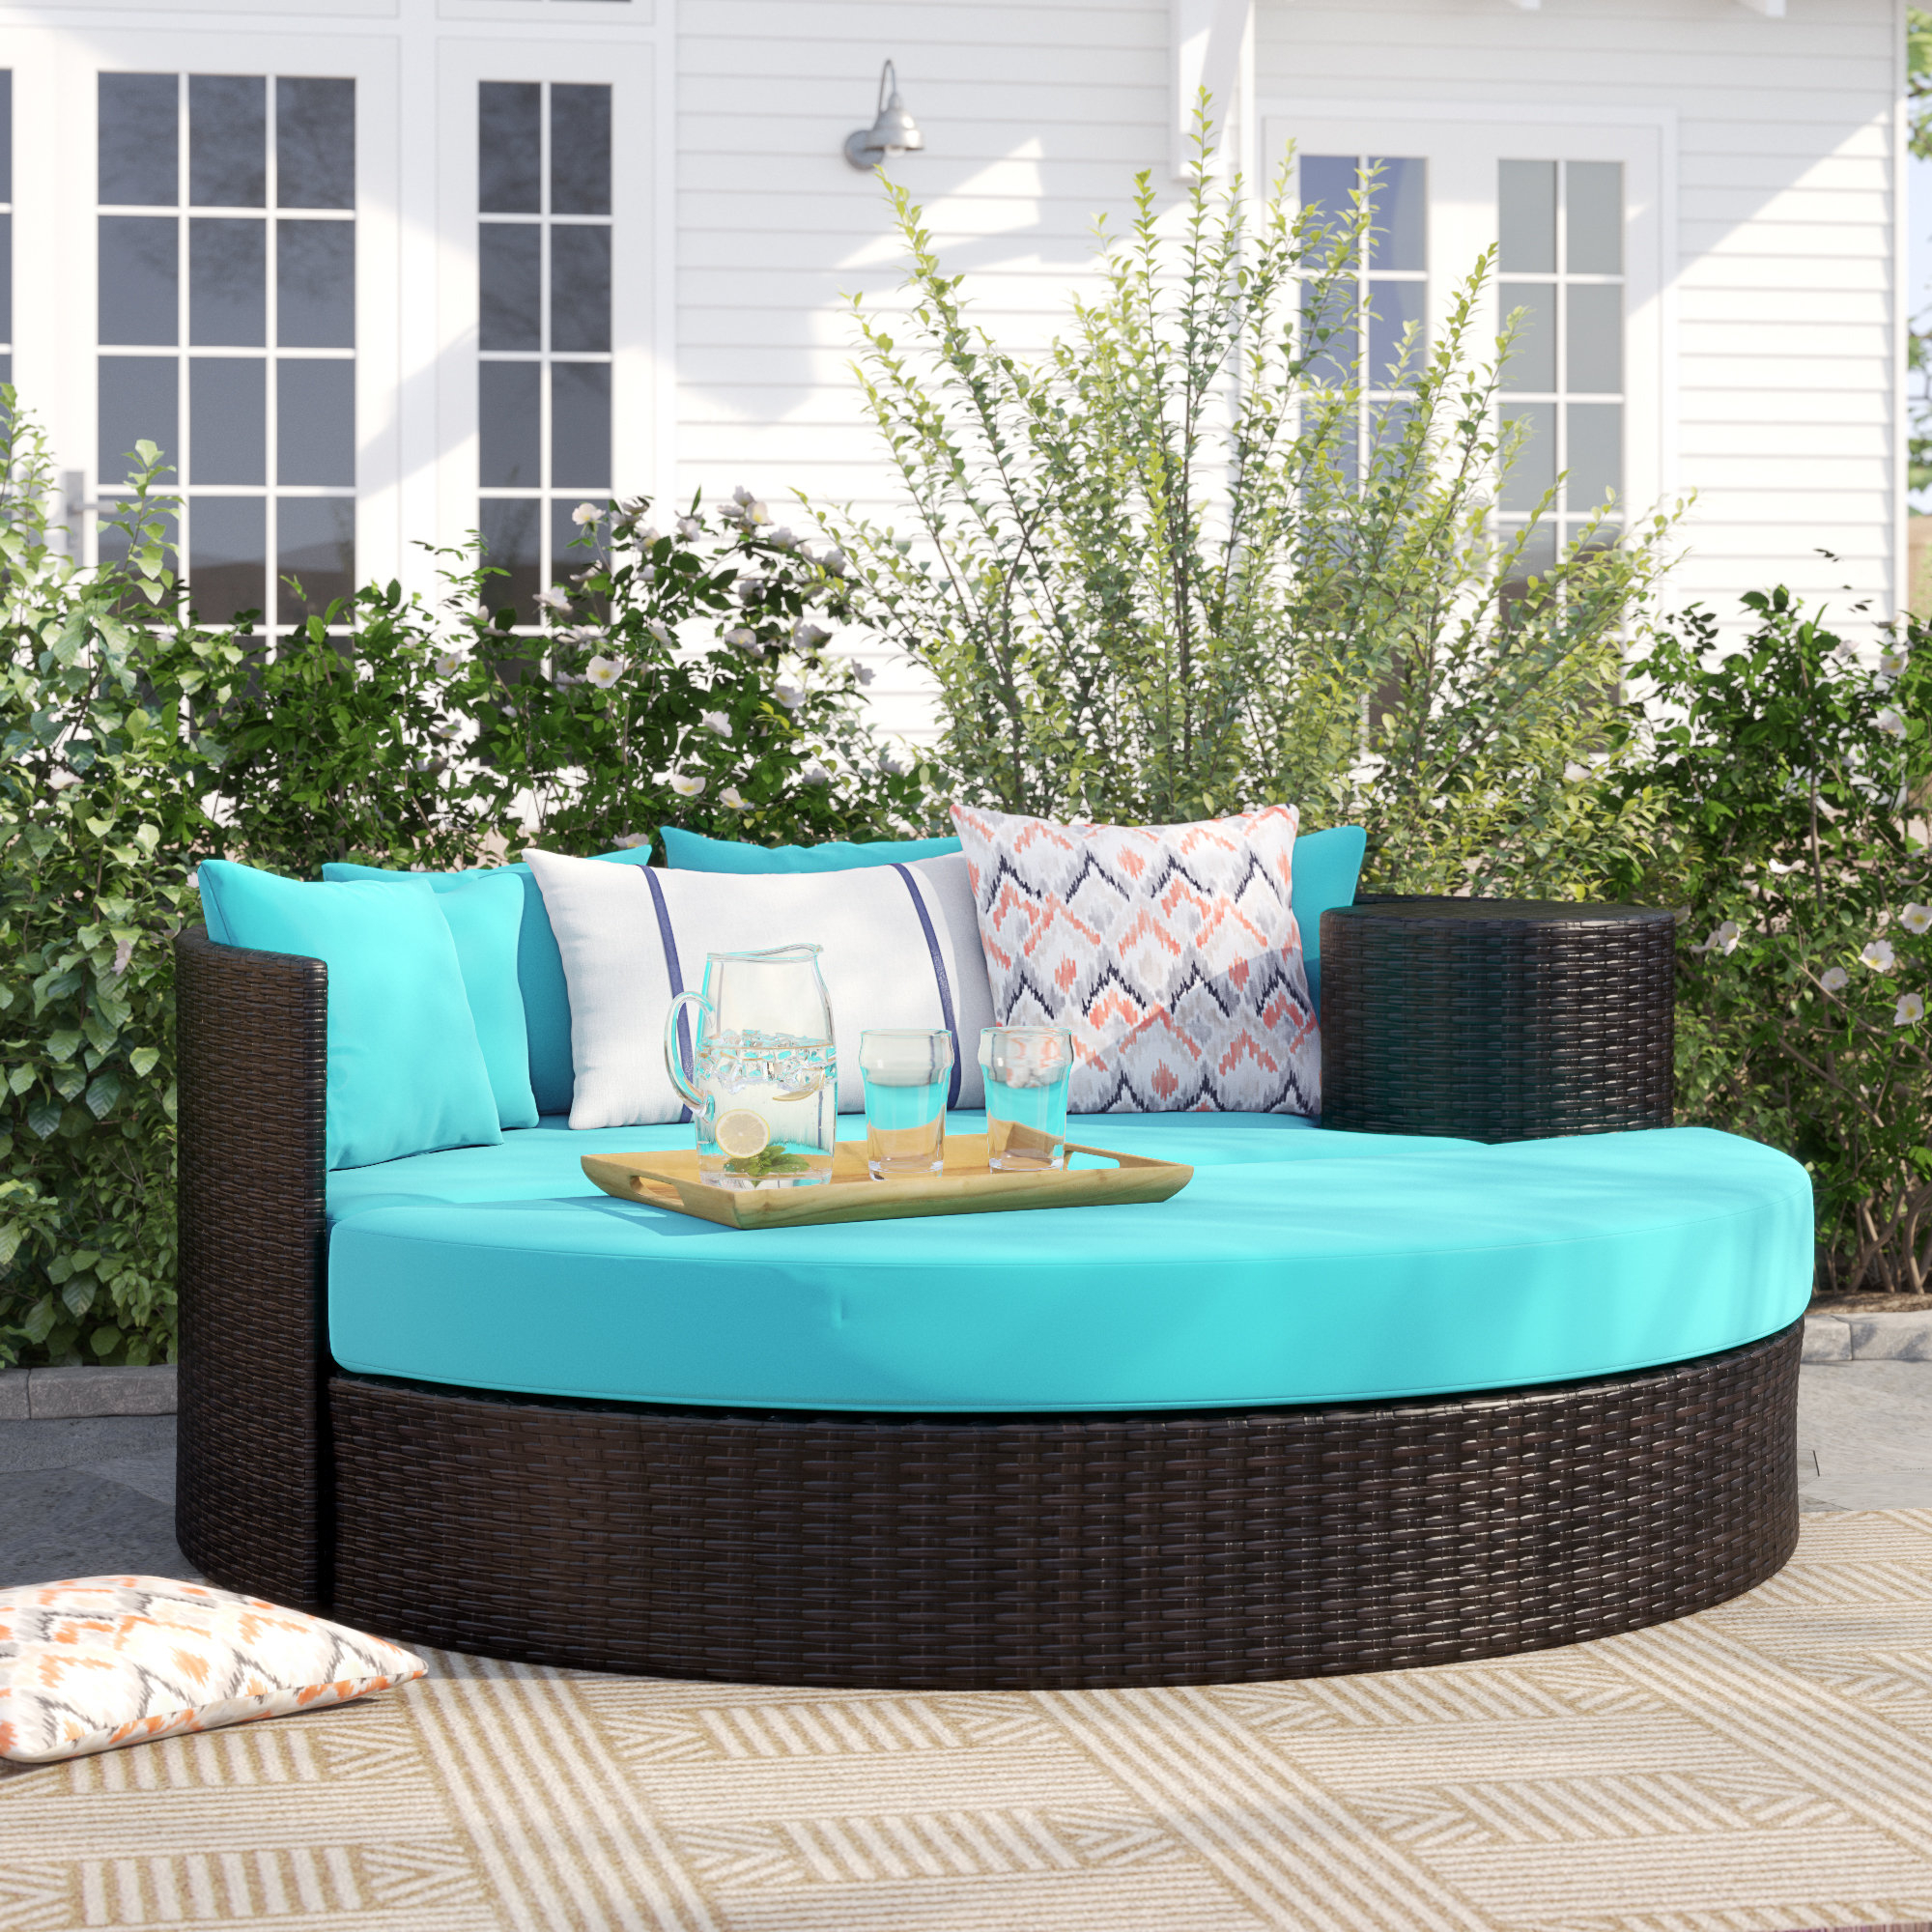 Lammers Outdoor Wicker Daybeds With Cushions Regarding Most Up To Date Freeport Patio Daybed With Cushion (Gallery 4 of 20)